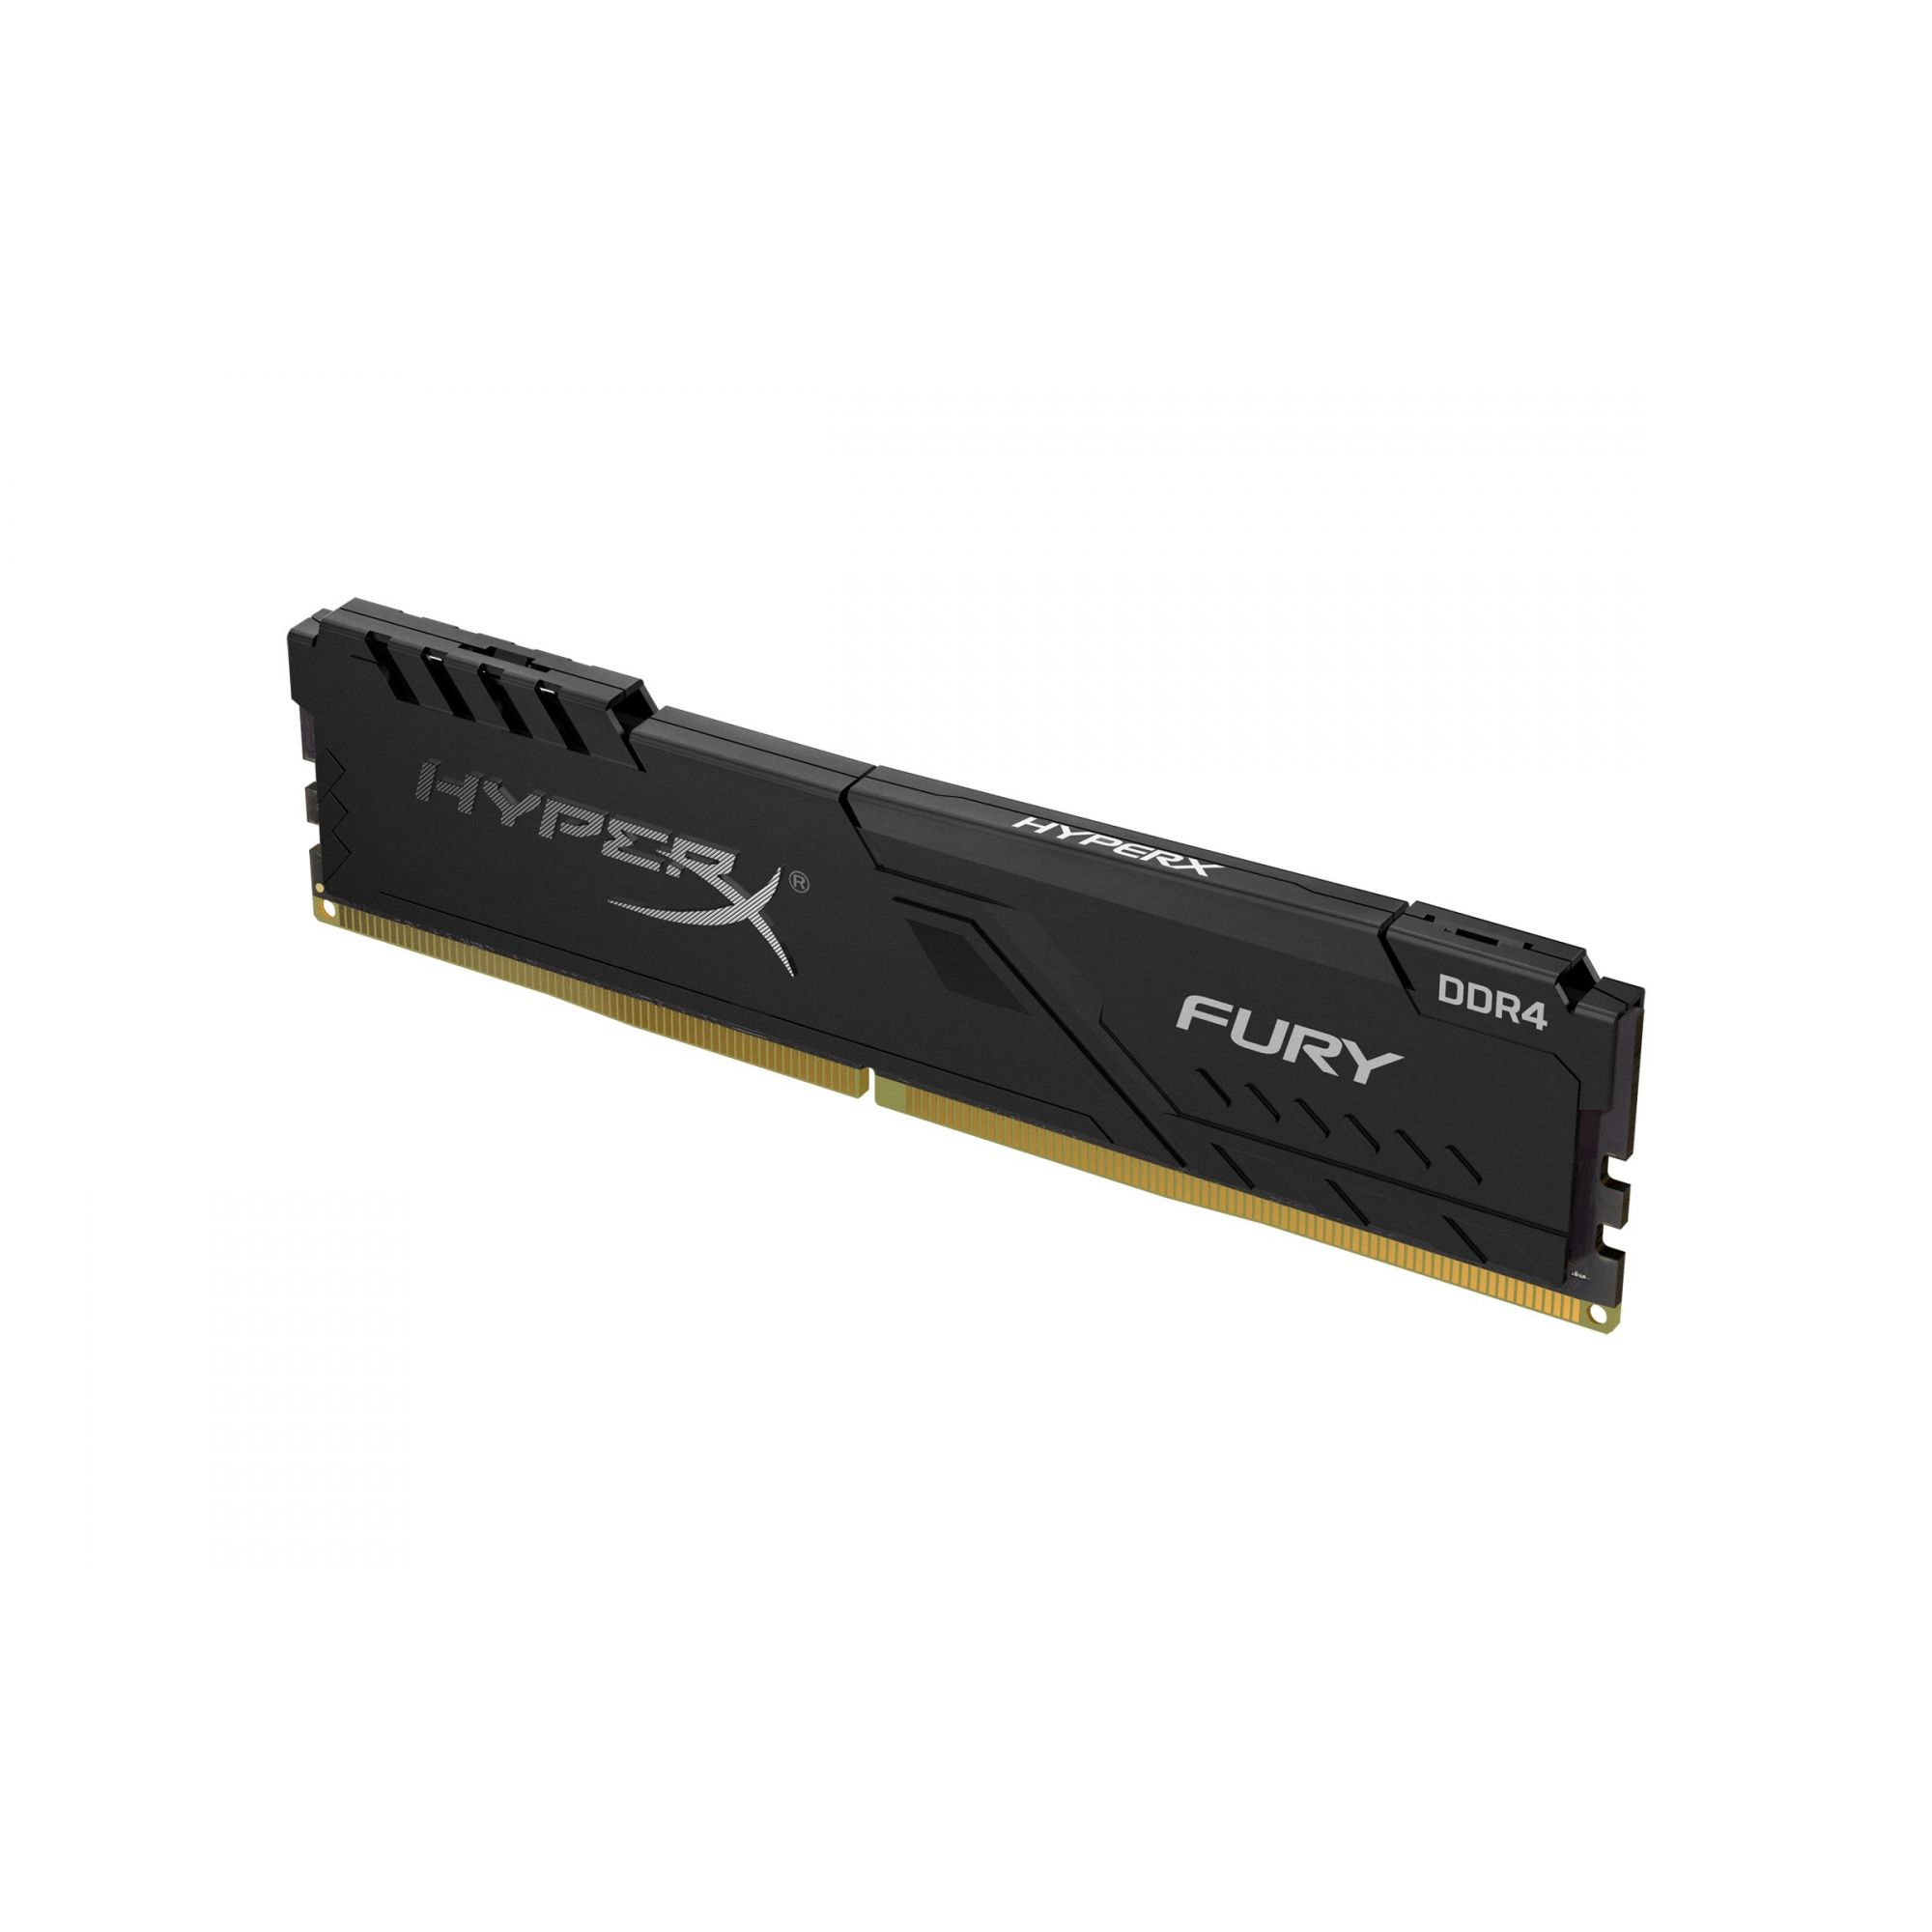 MEMORIA DESKTOP KINGSTON 16GB HYPERX FURY DDR4 3200MHZ PRETO HX432C16FB3/16